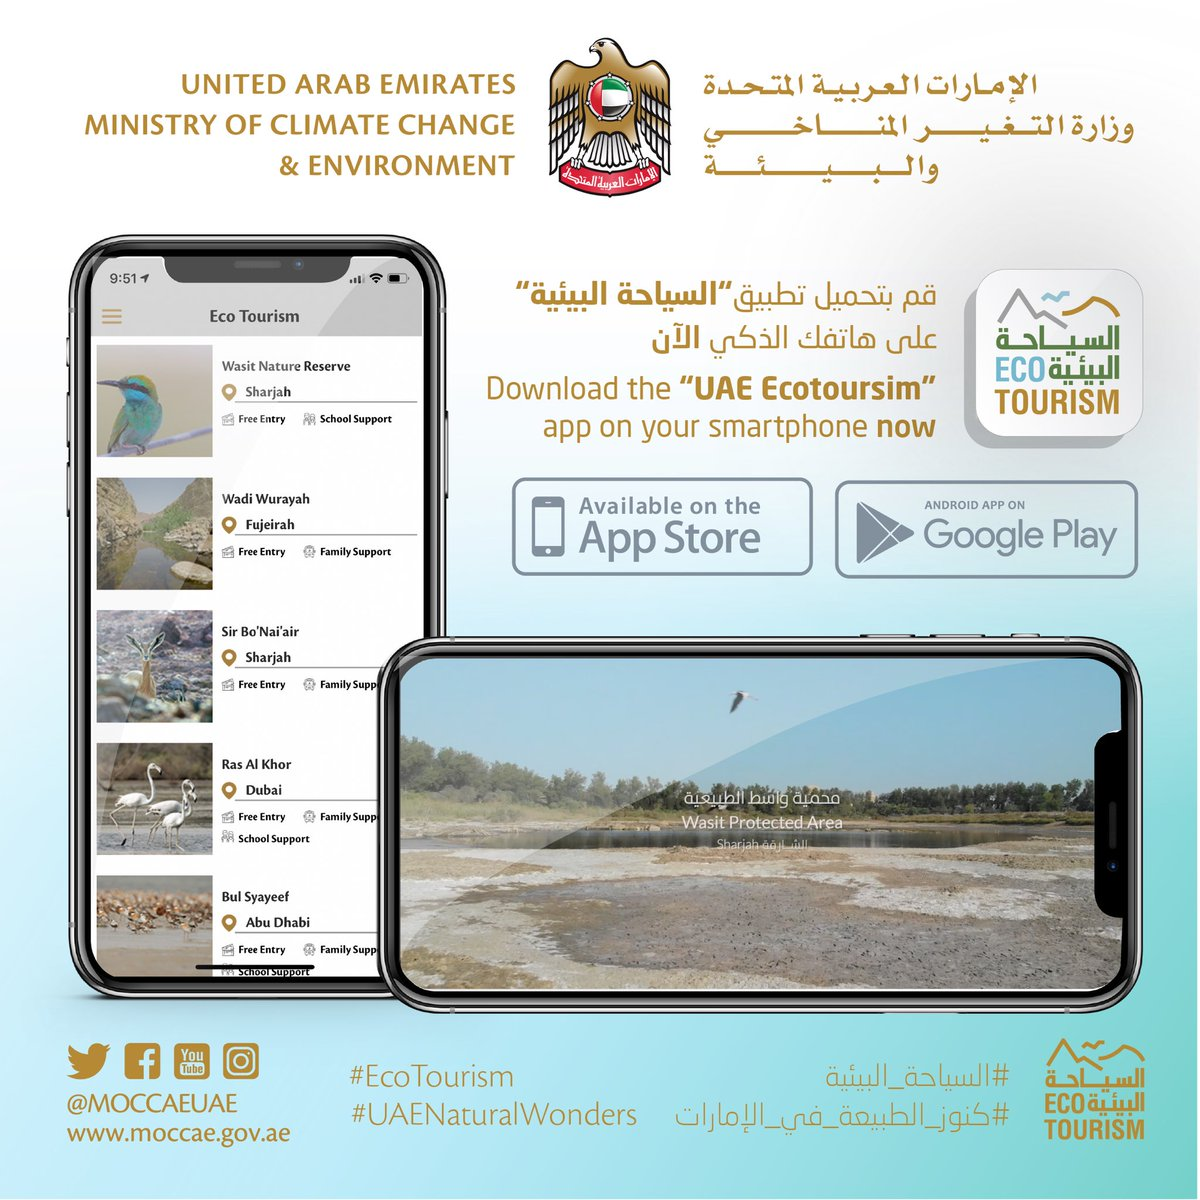 uaenaturalwonders hashtag on Twitter